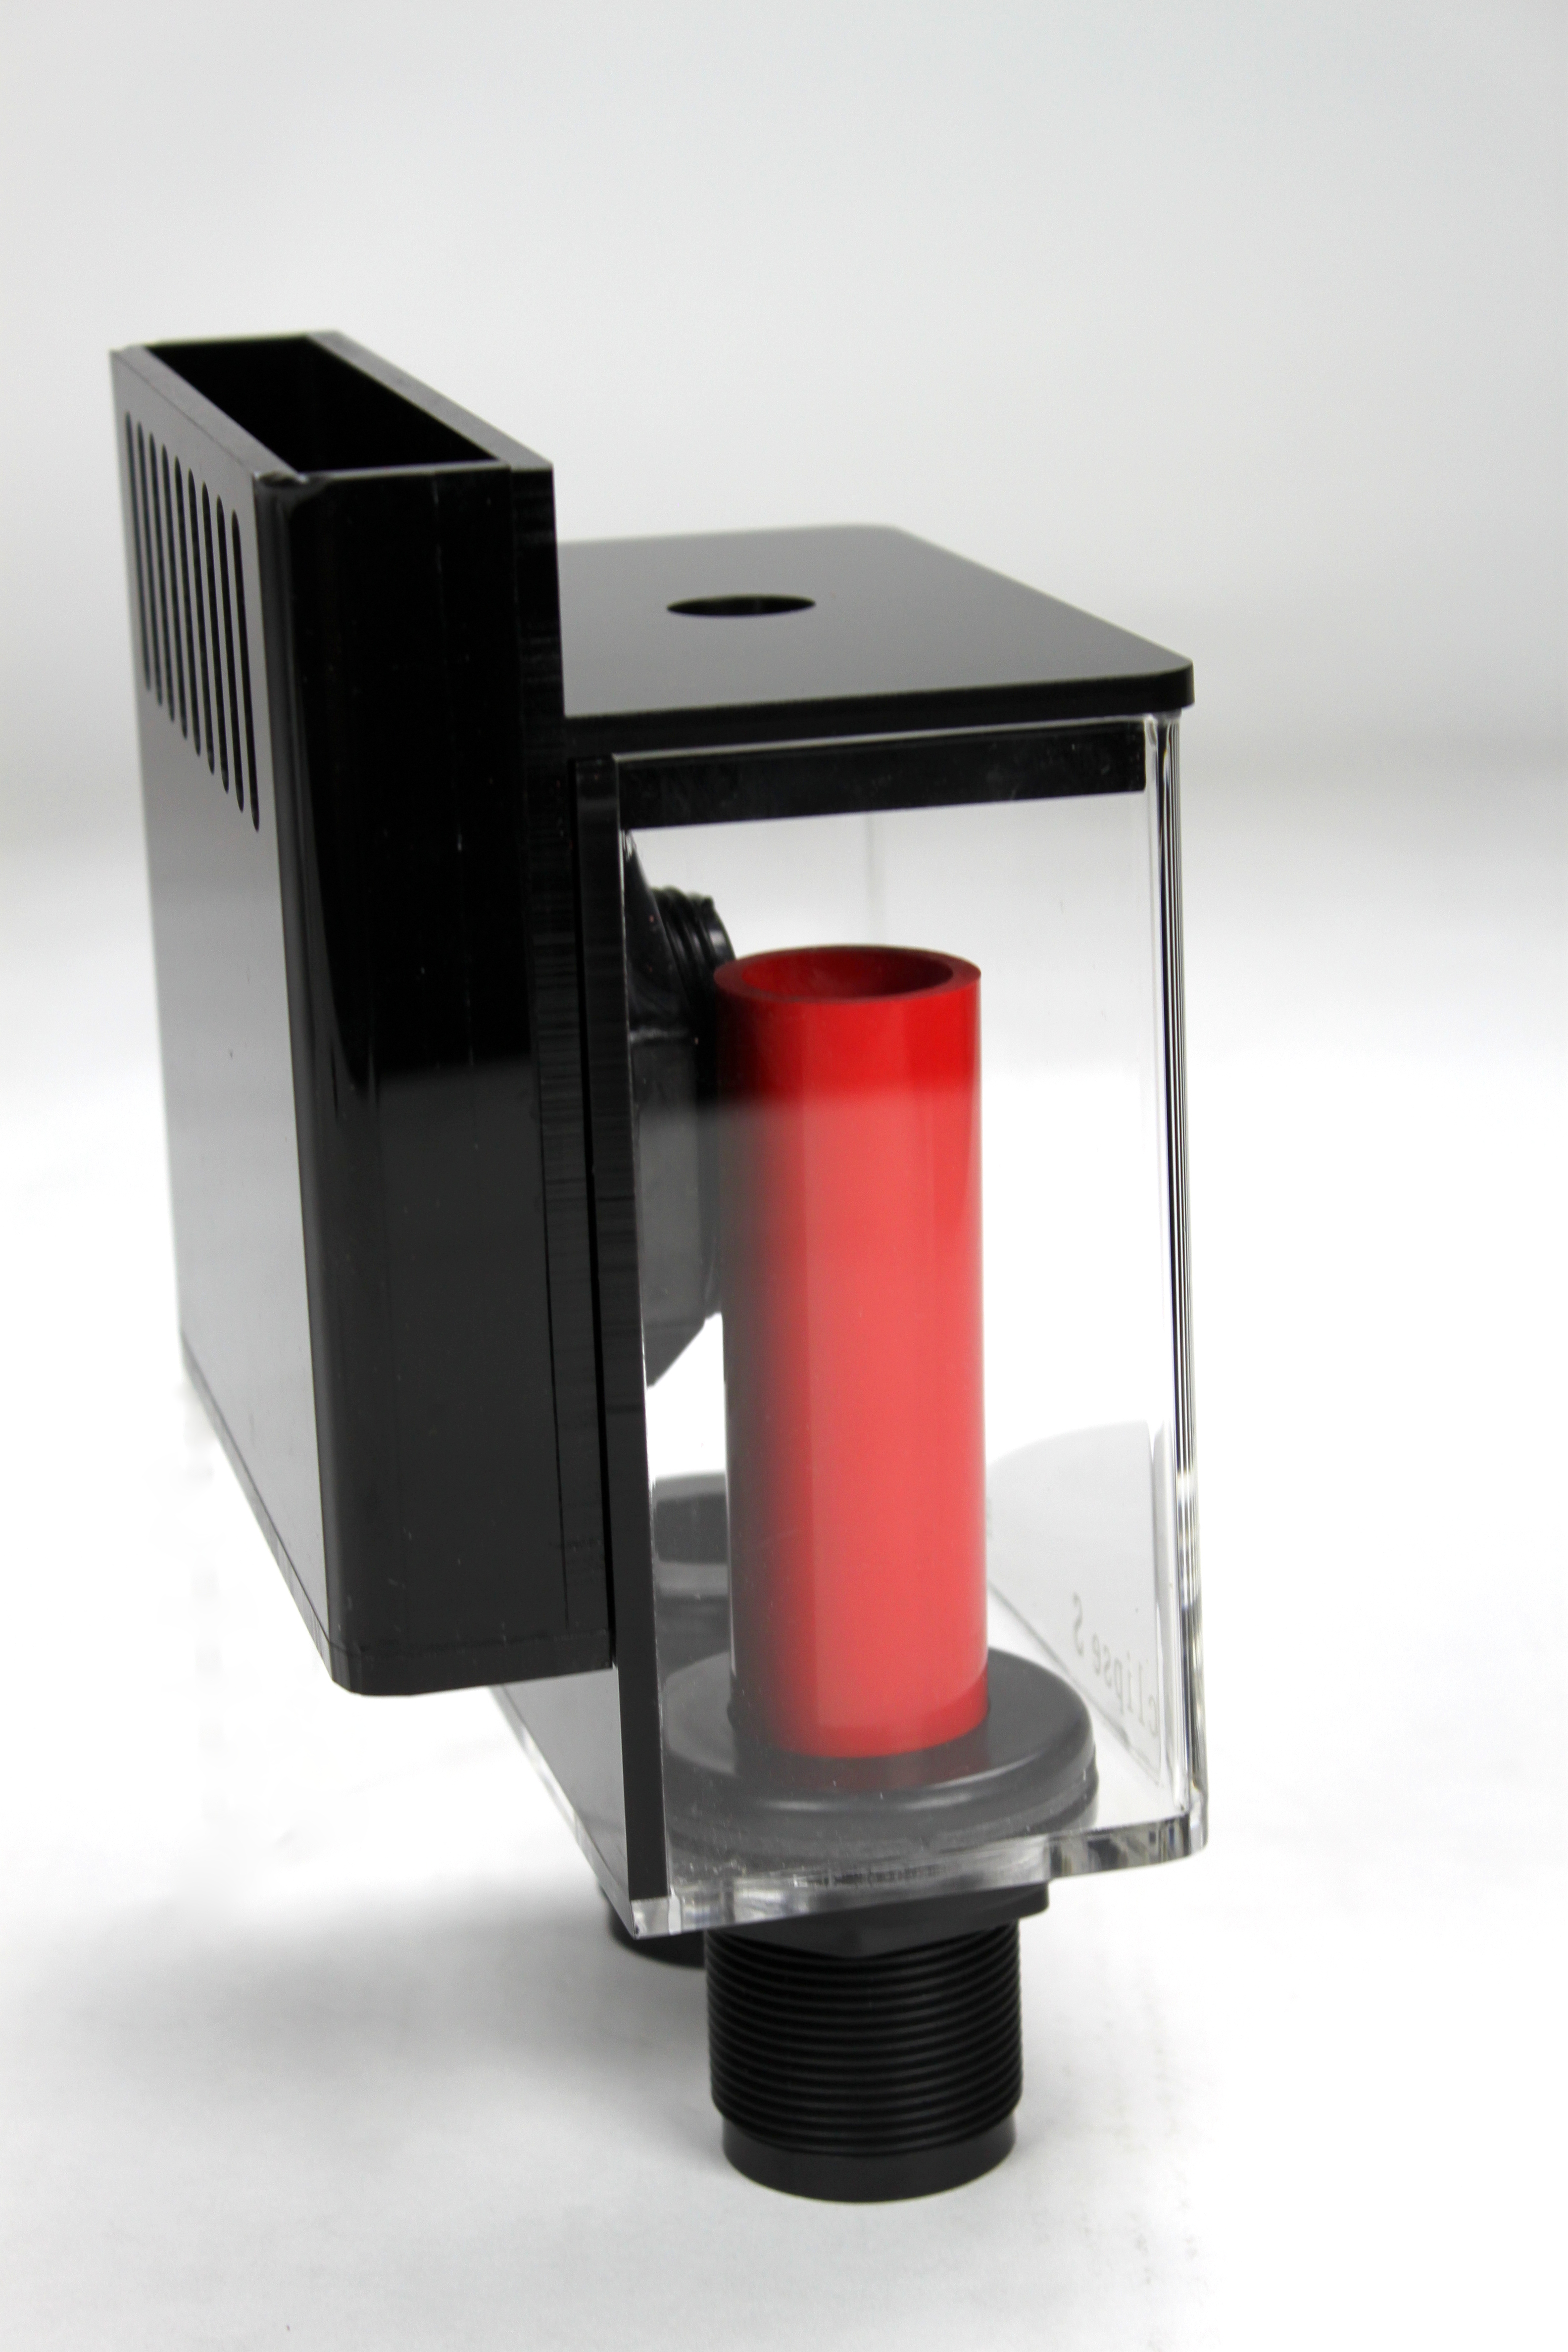 Eclipse S Slim Overflow Box up to 75 Gallons